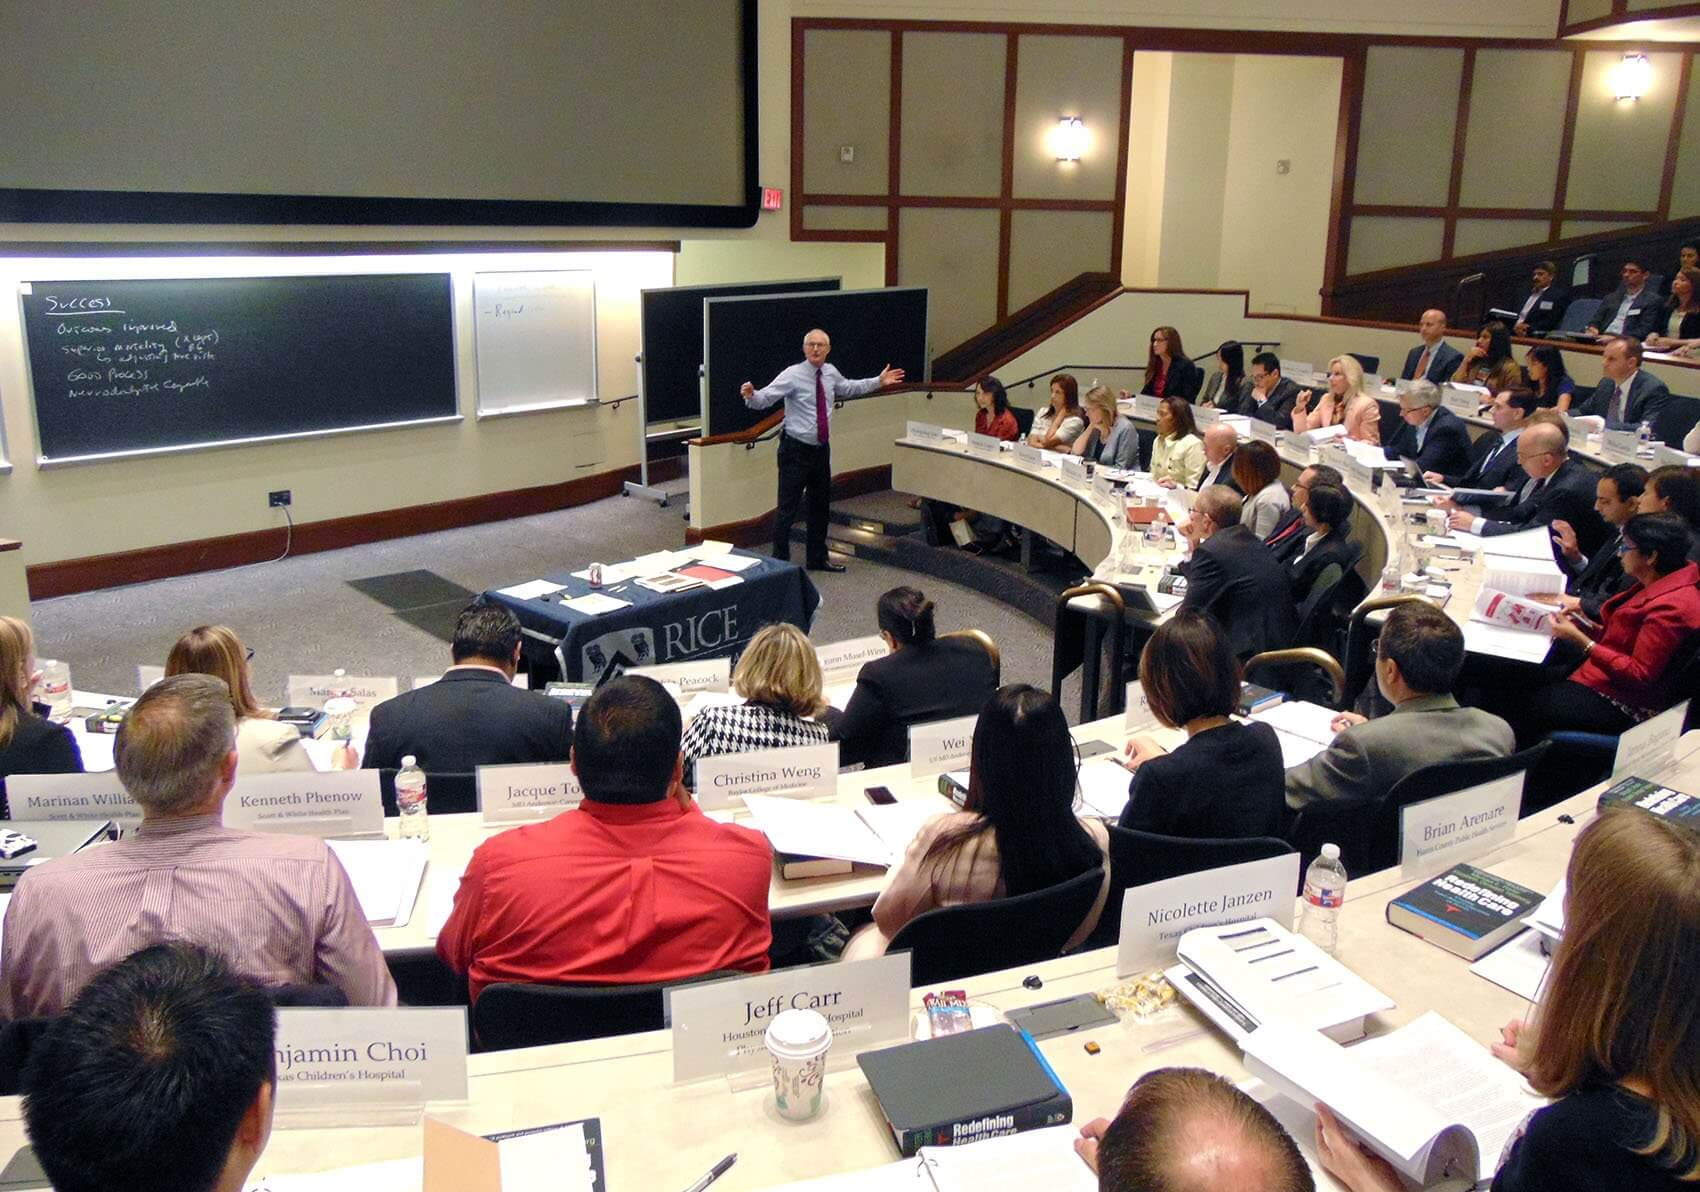 Held at Rice University's Jesse H. Jones Graduate School of Business, this is the second year that the Texas Medical Center has hosted the course.